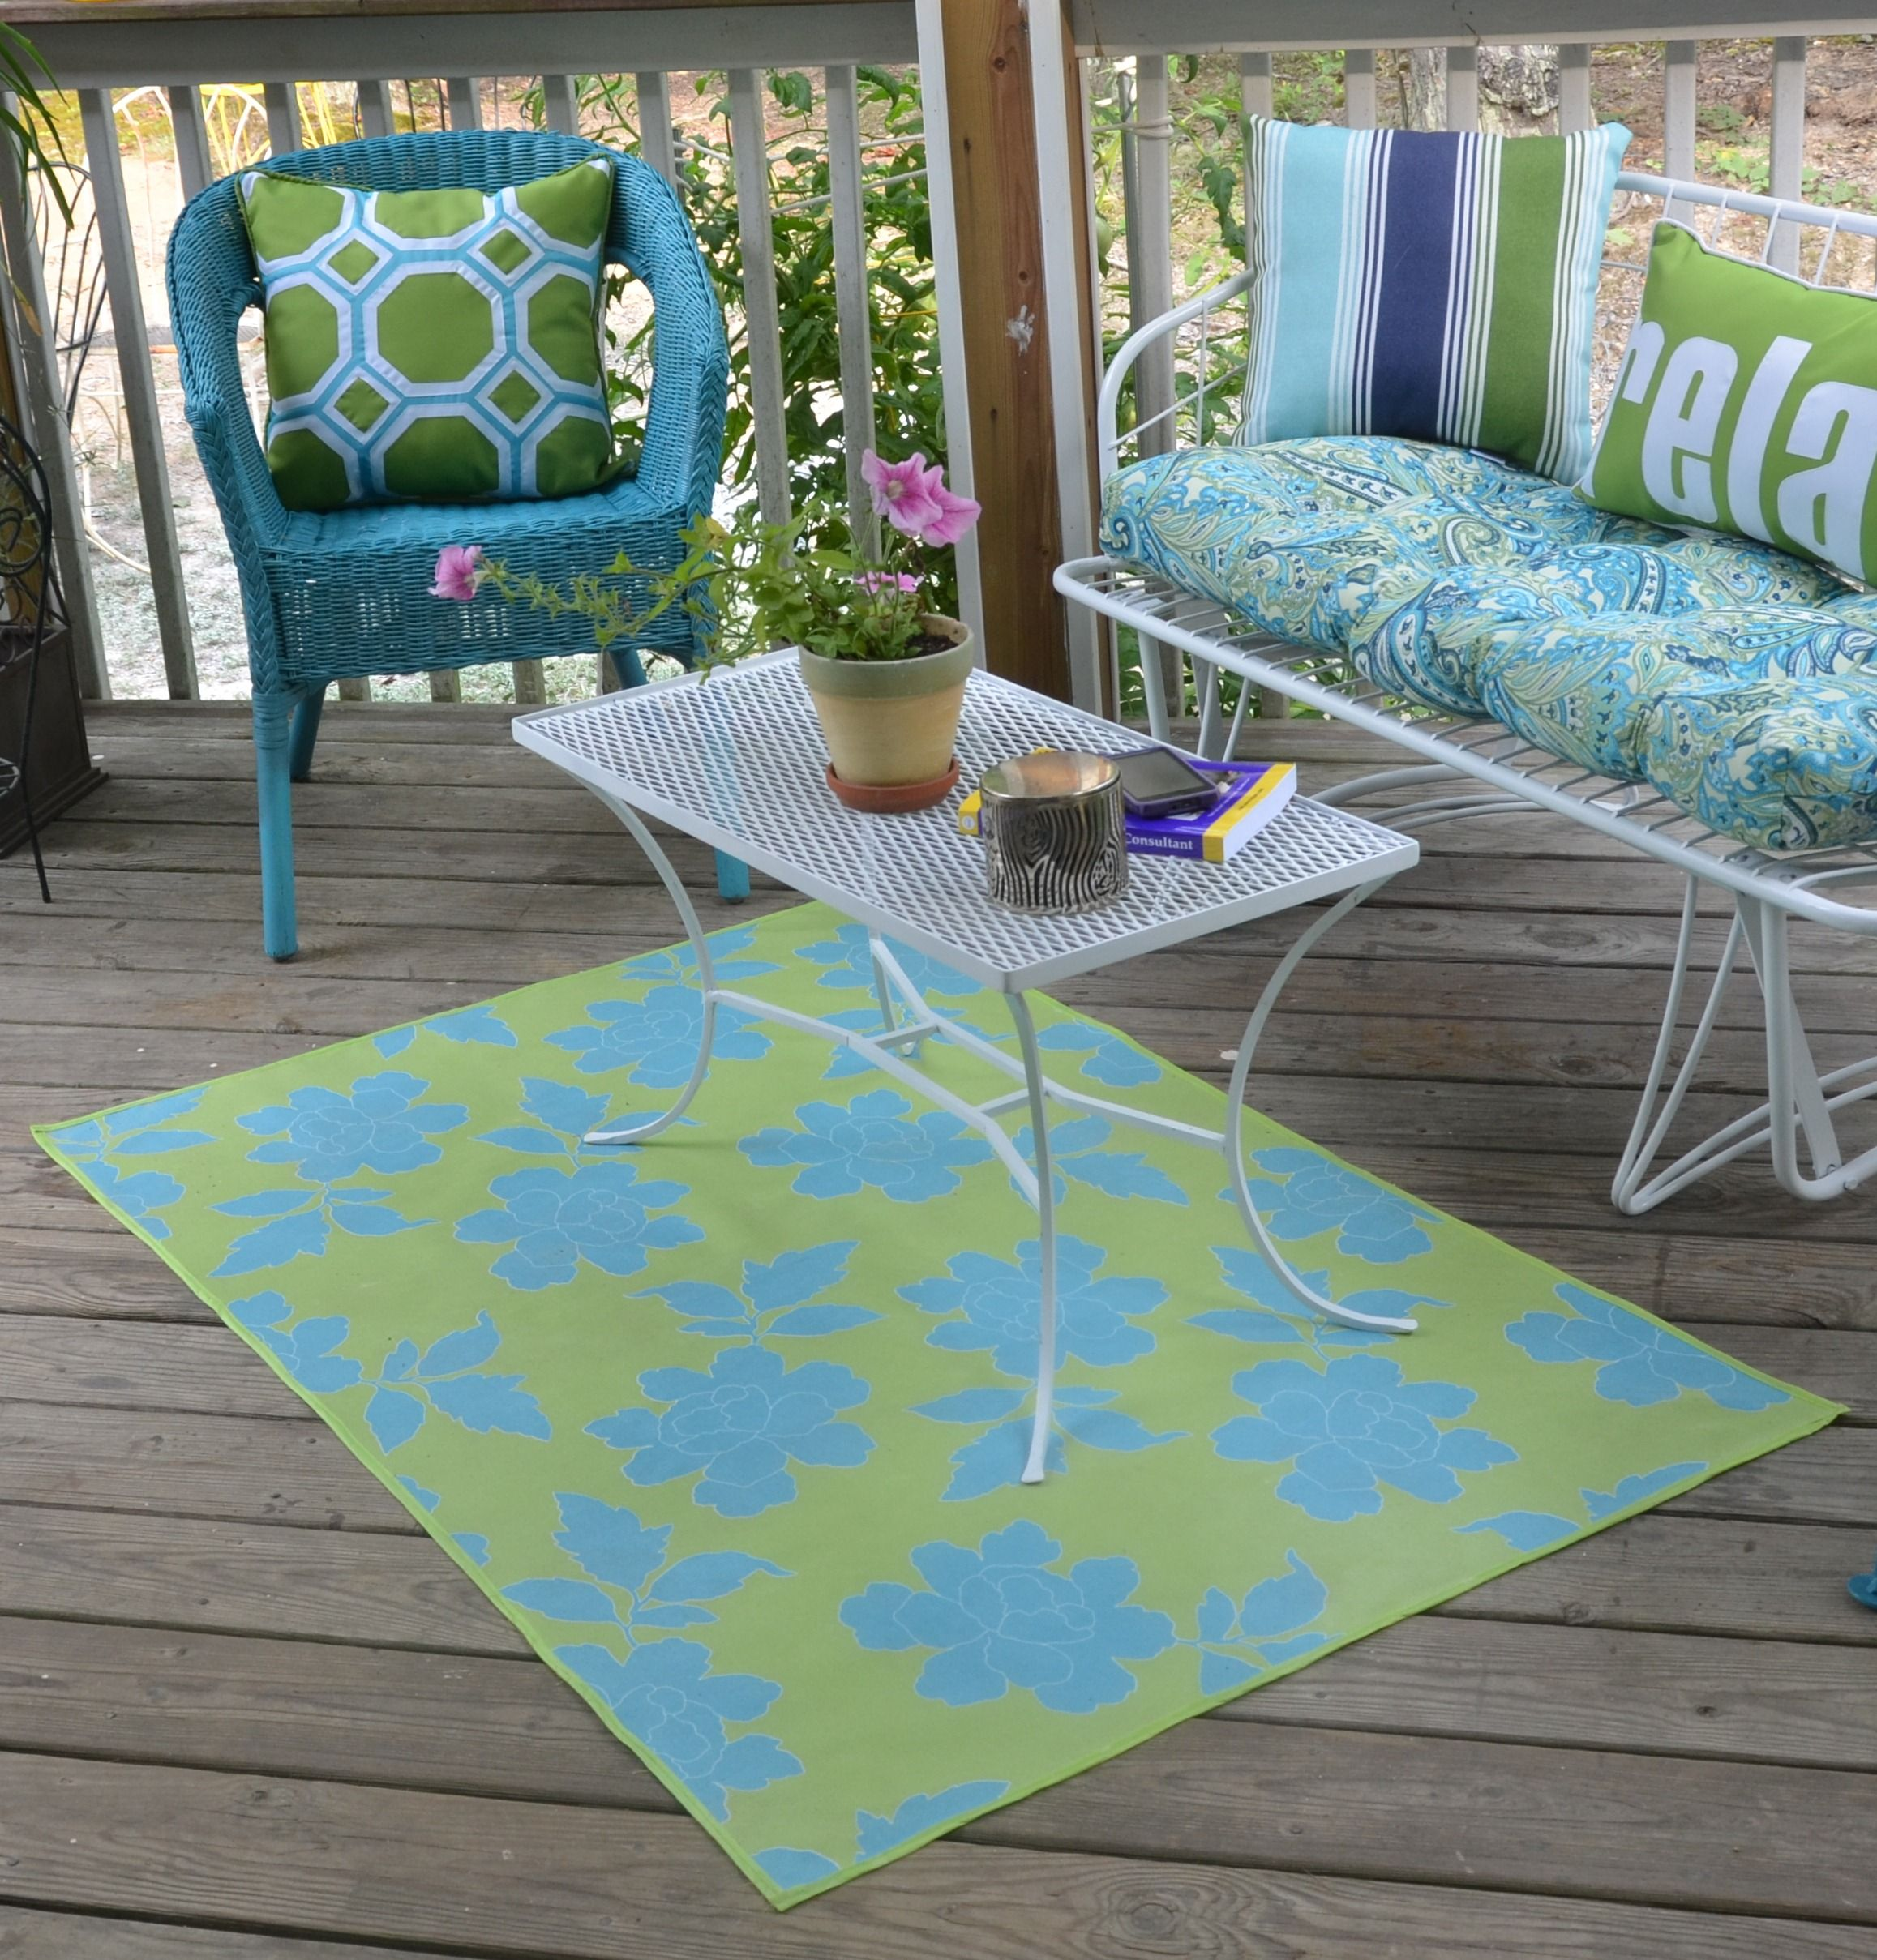 My Floor Cloth Rug That I Made With Outdoor Canvas Material That I Coated With Polyurethane Floor Cloth Painted Floors Outdoor Canvas